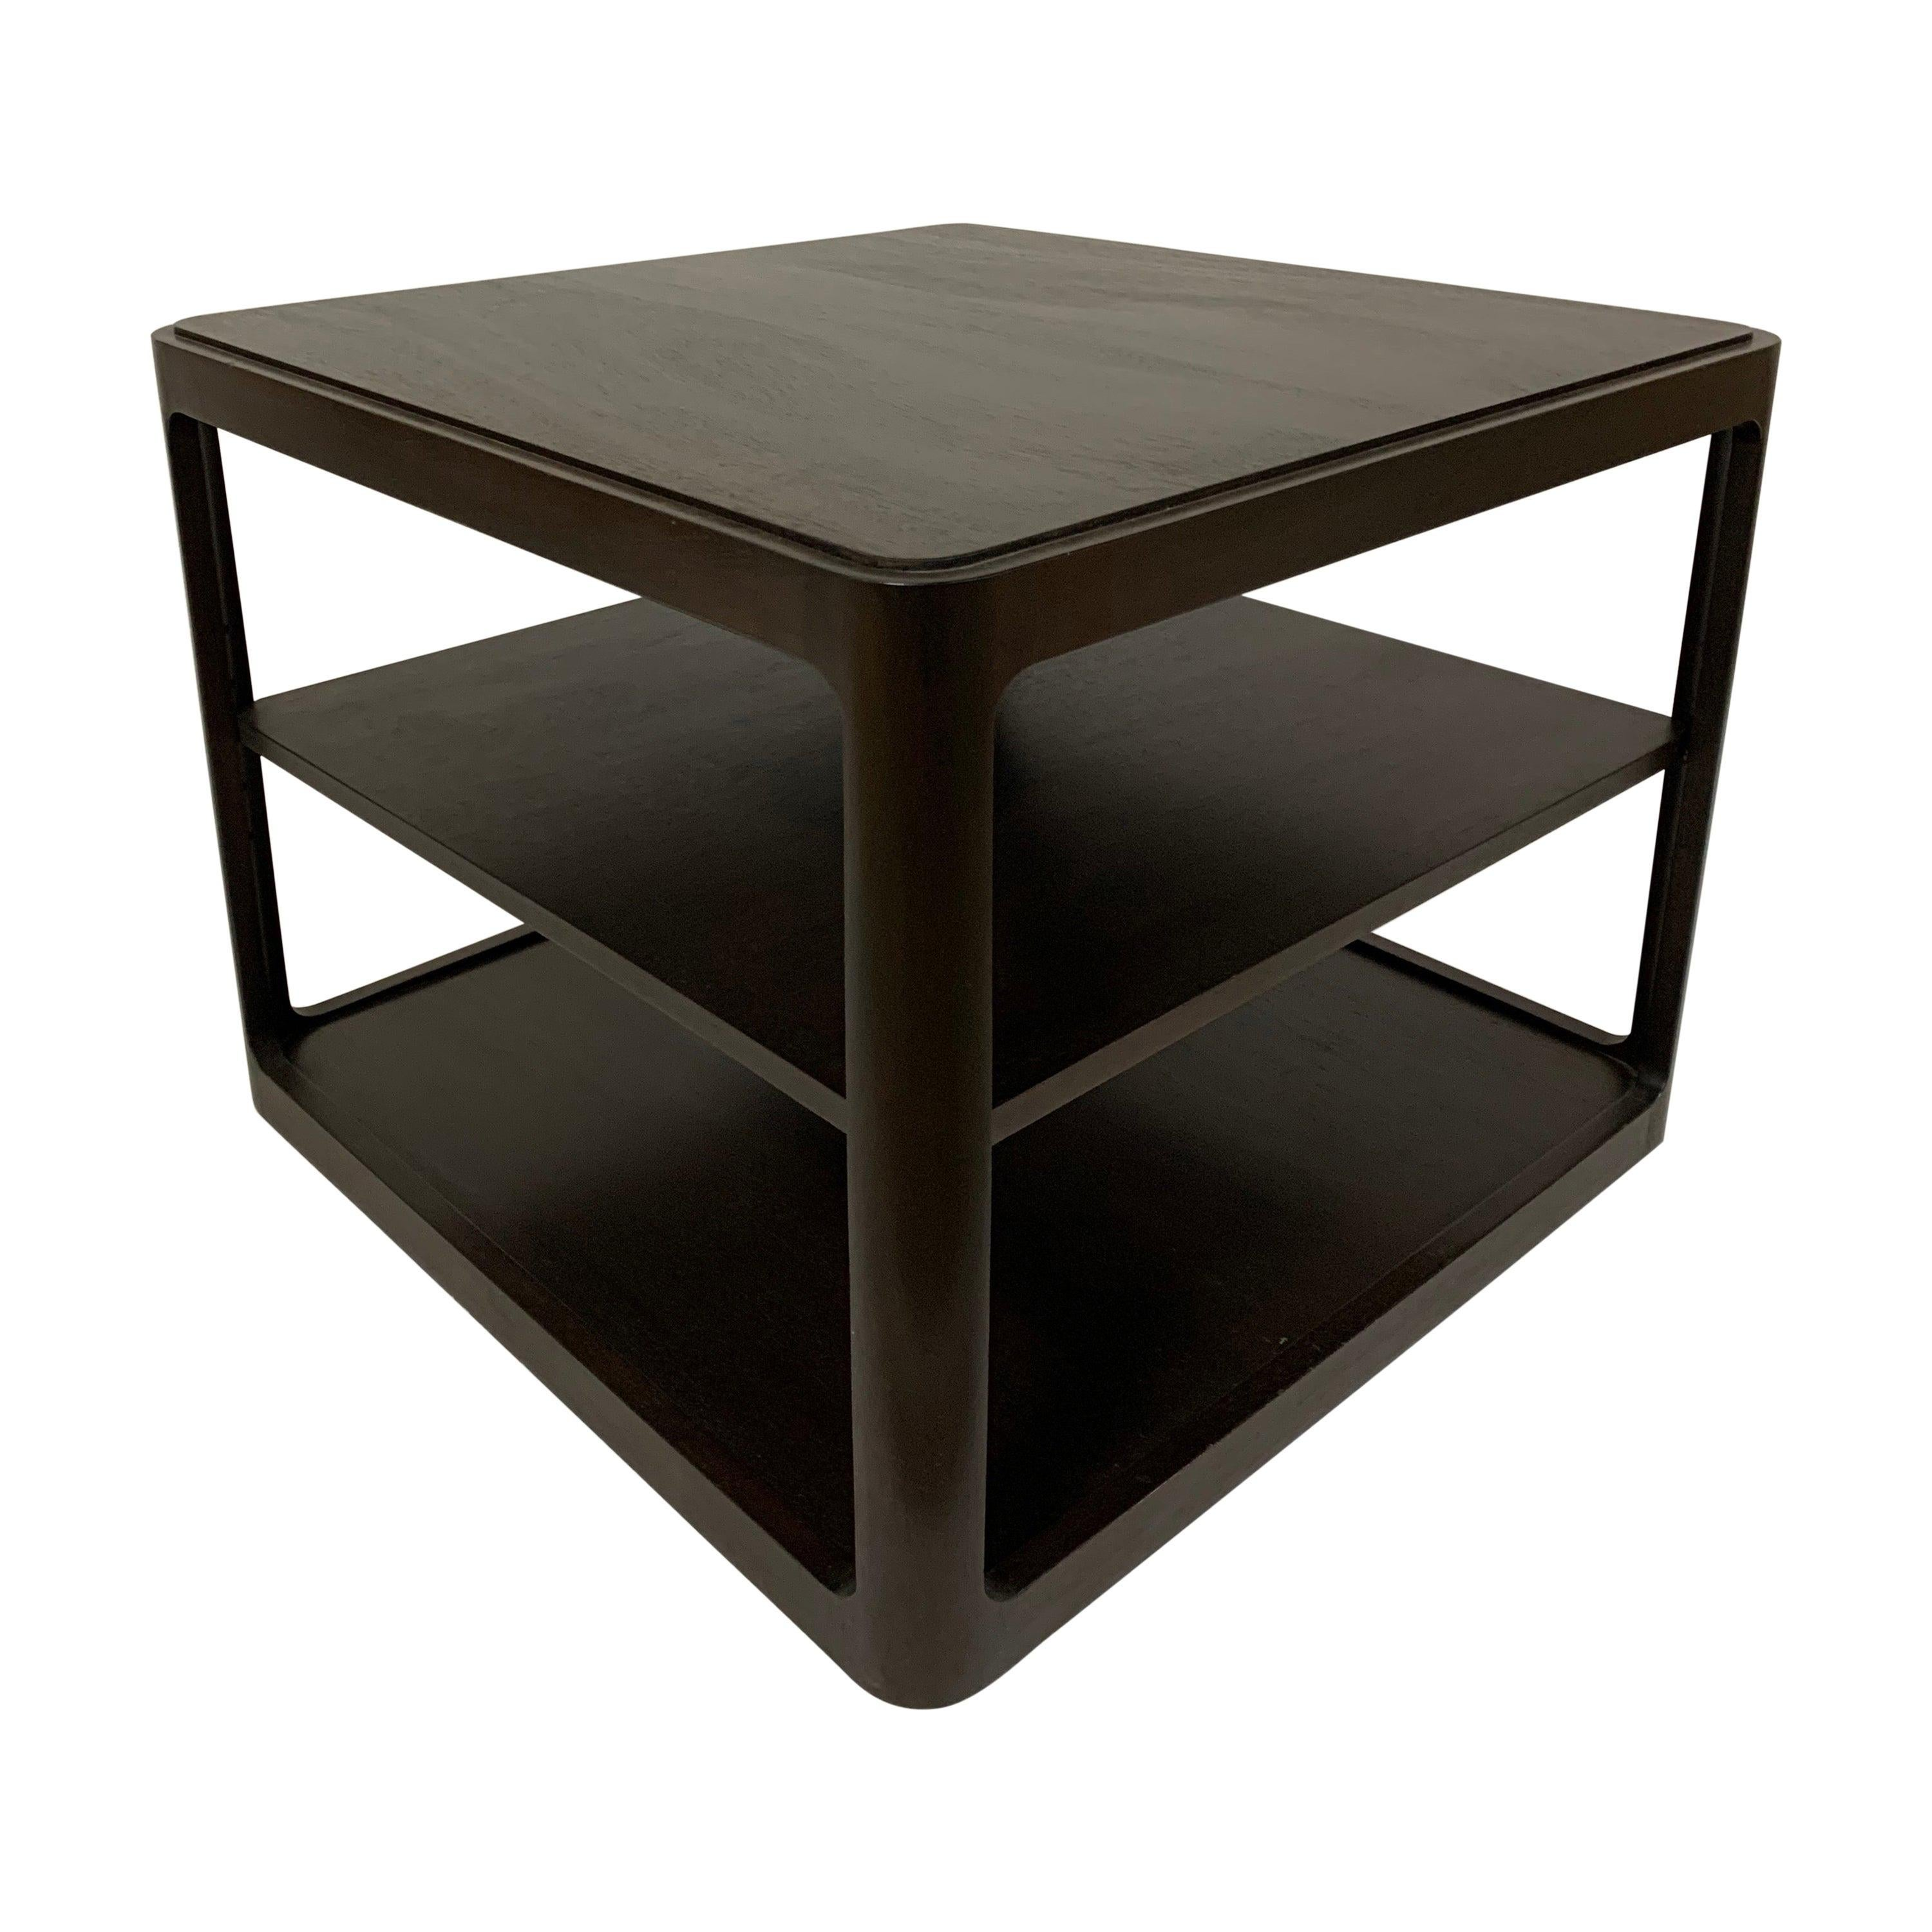 Dunbar Midcentury Square End Table